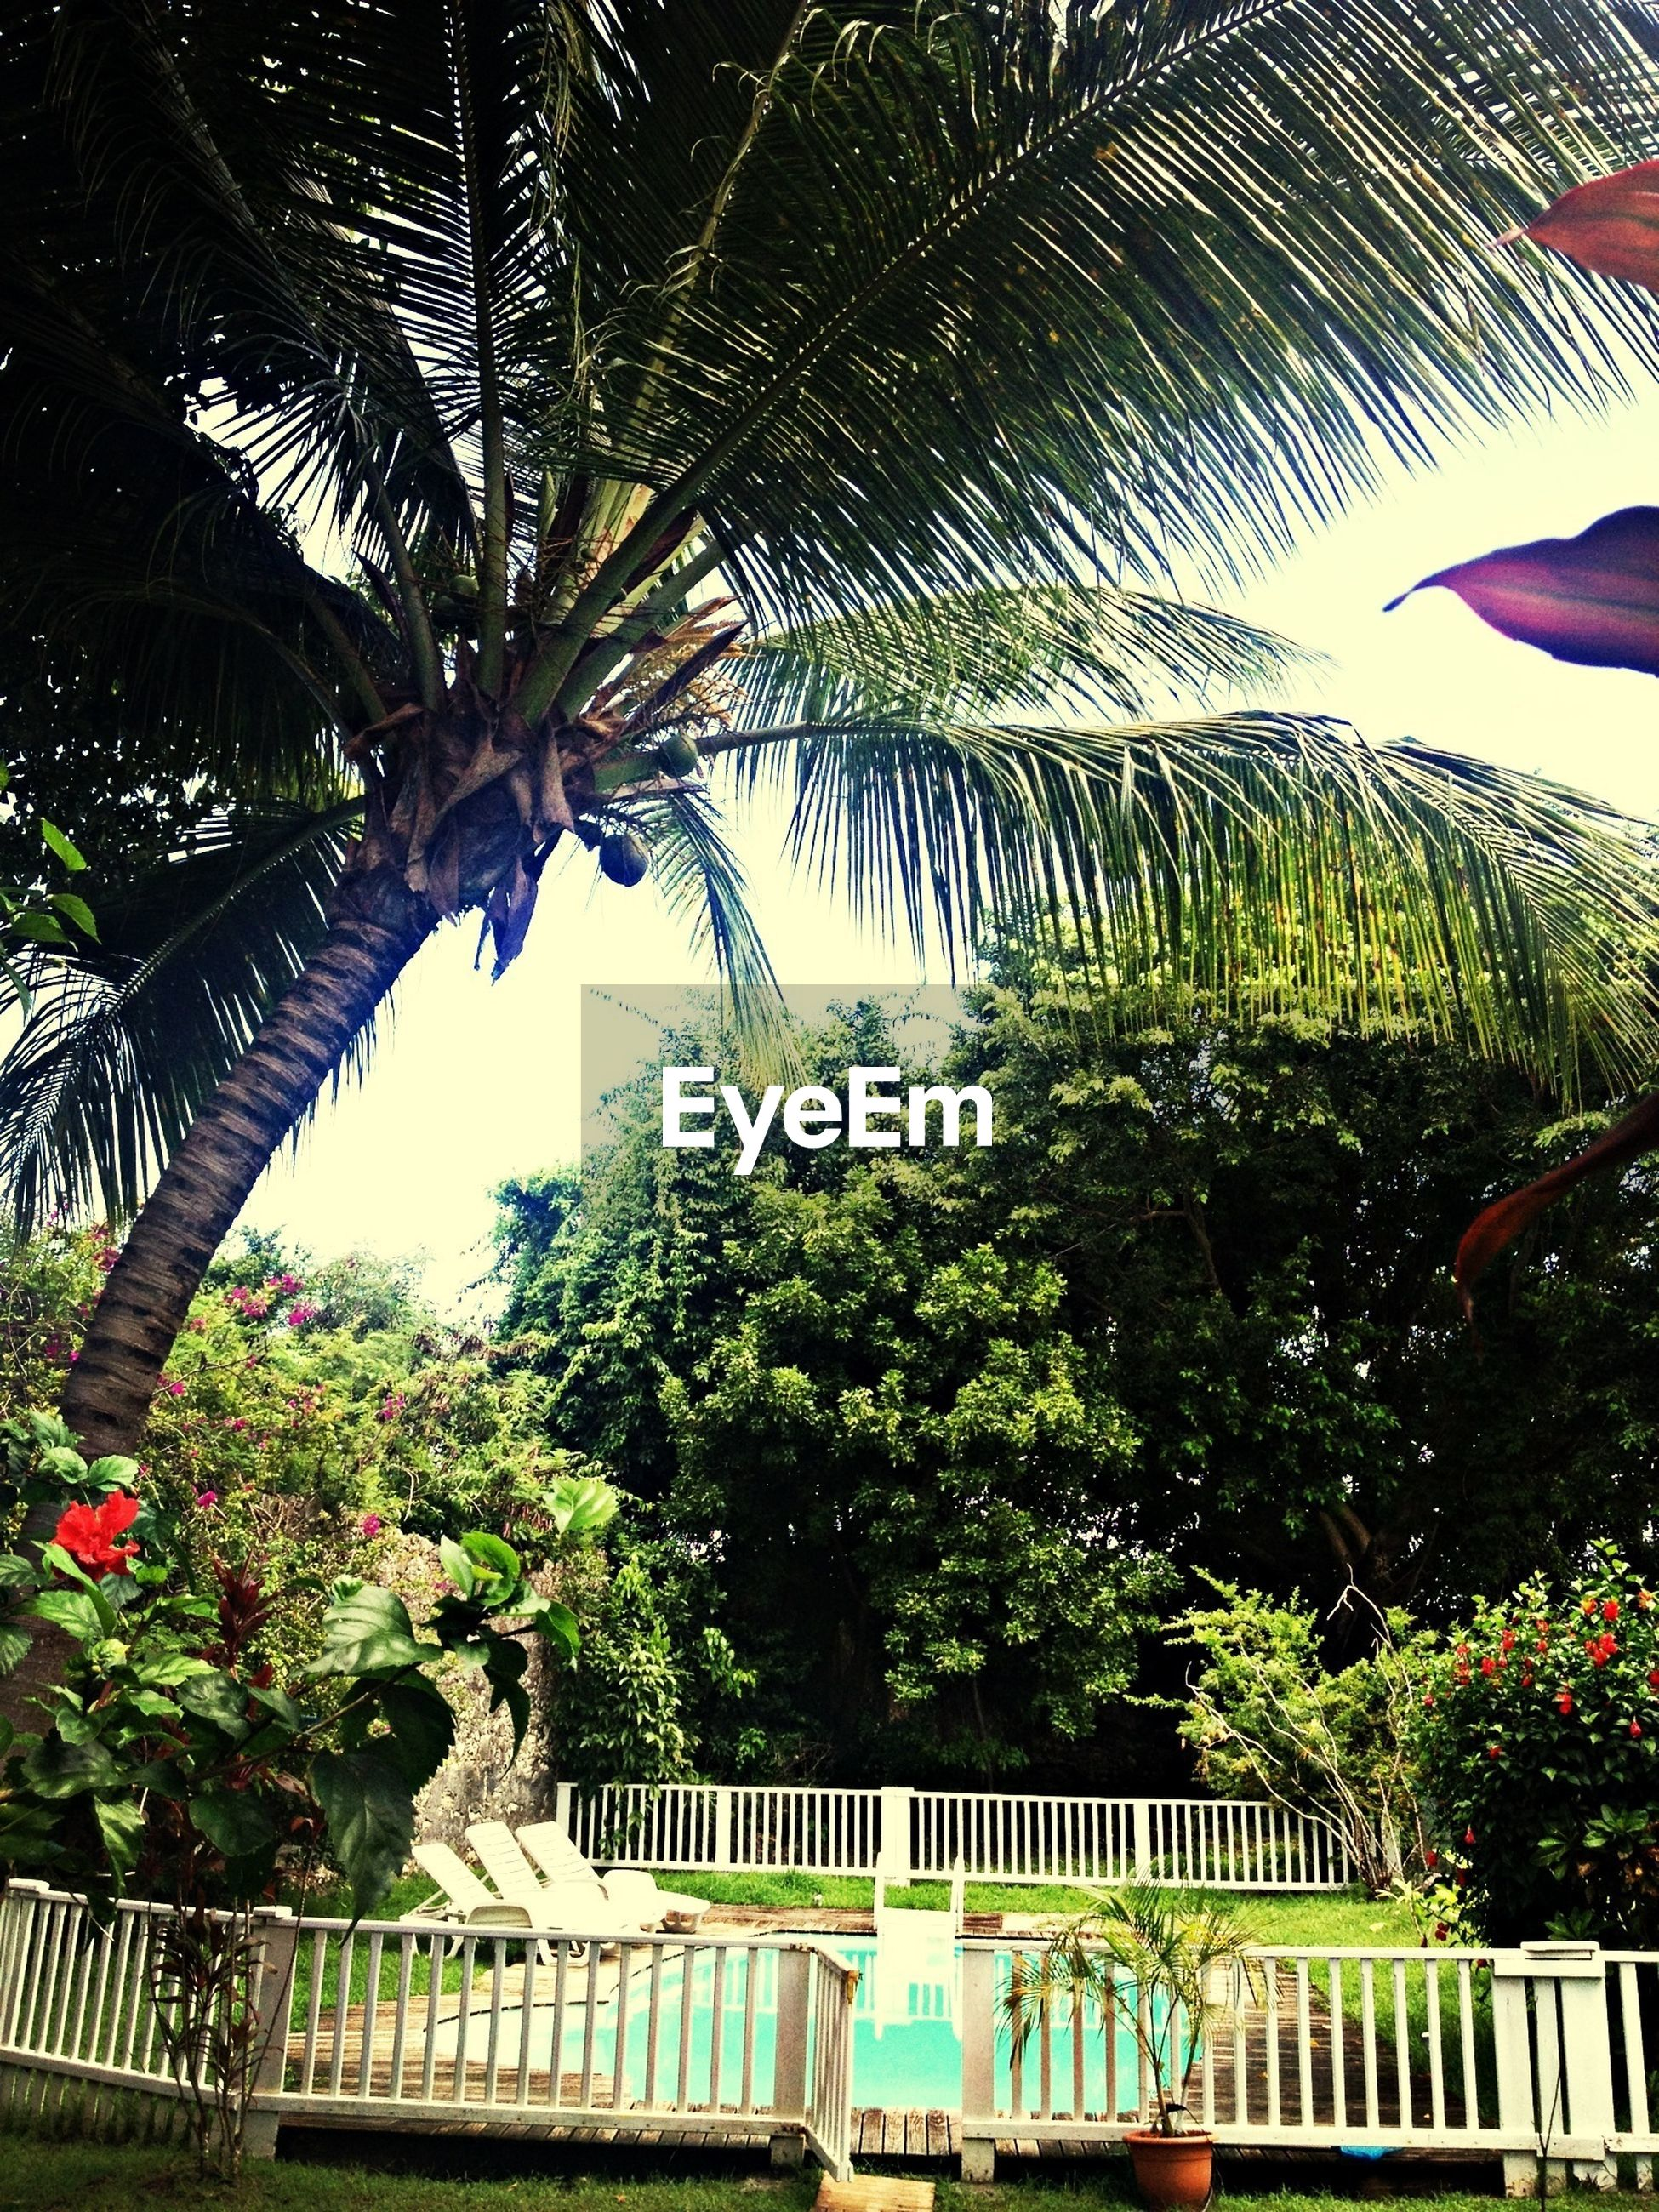 tree, railing, growth, sky, palm tree, nature, leisure activity, green color, lifestyles, park - man made space, plant, day, outdoors, branch, built structure, tranquility, relaxation, person